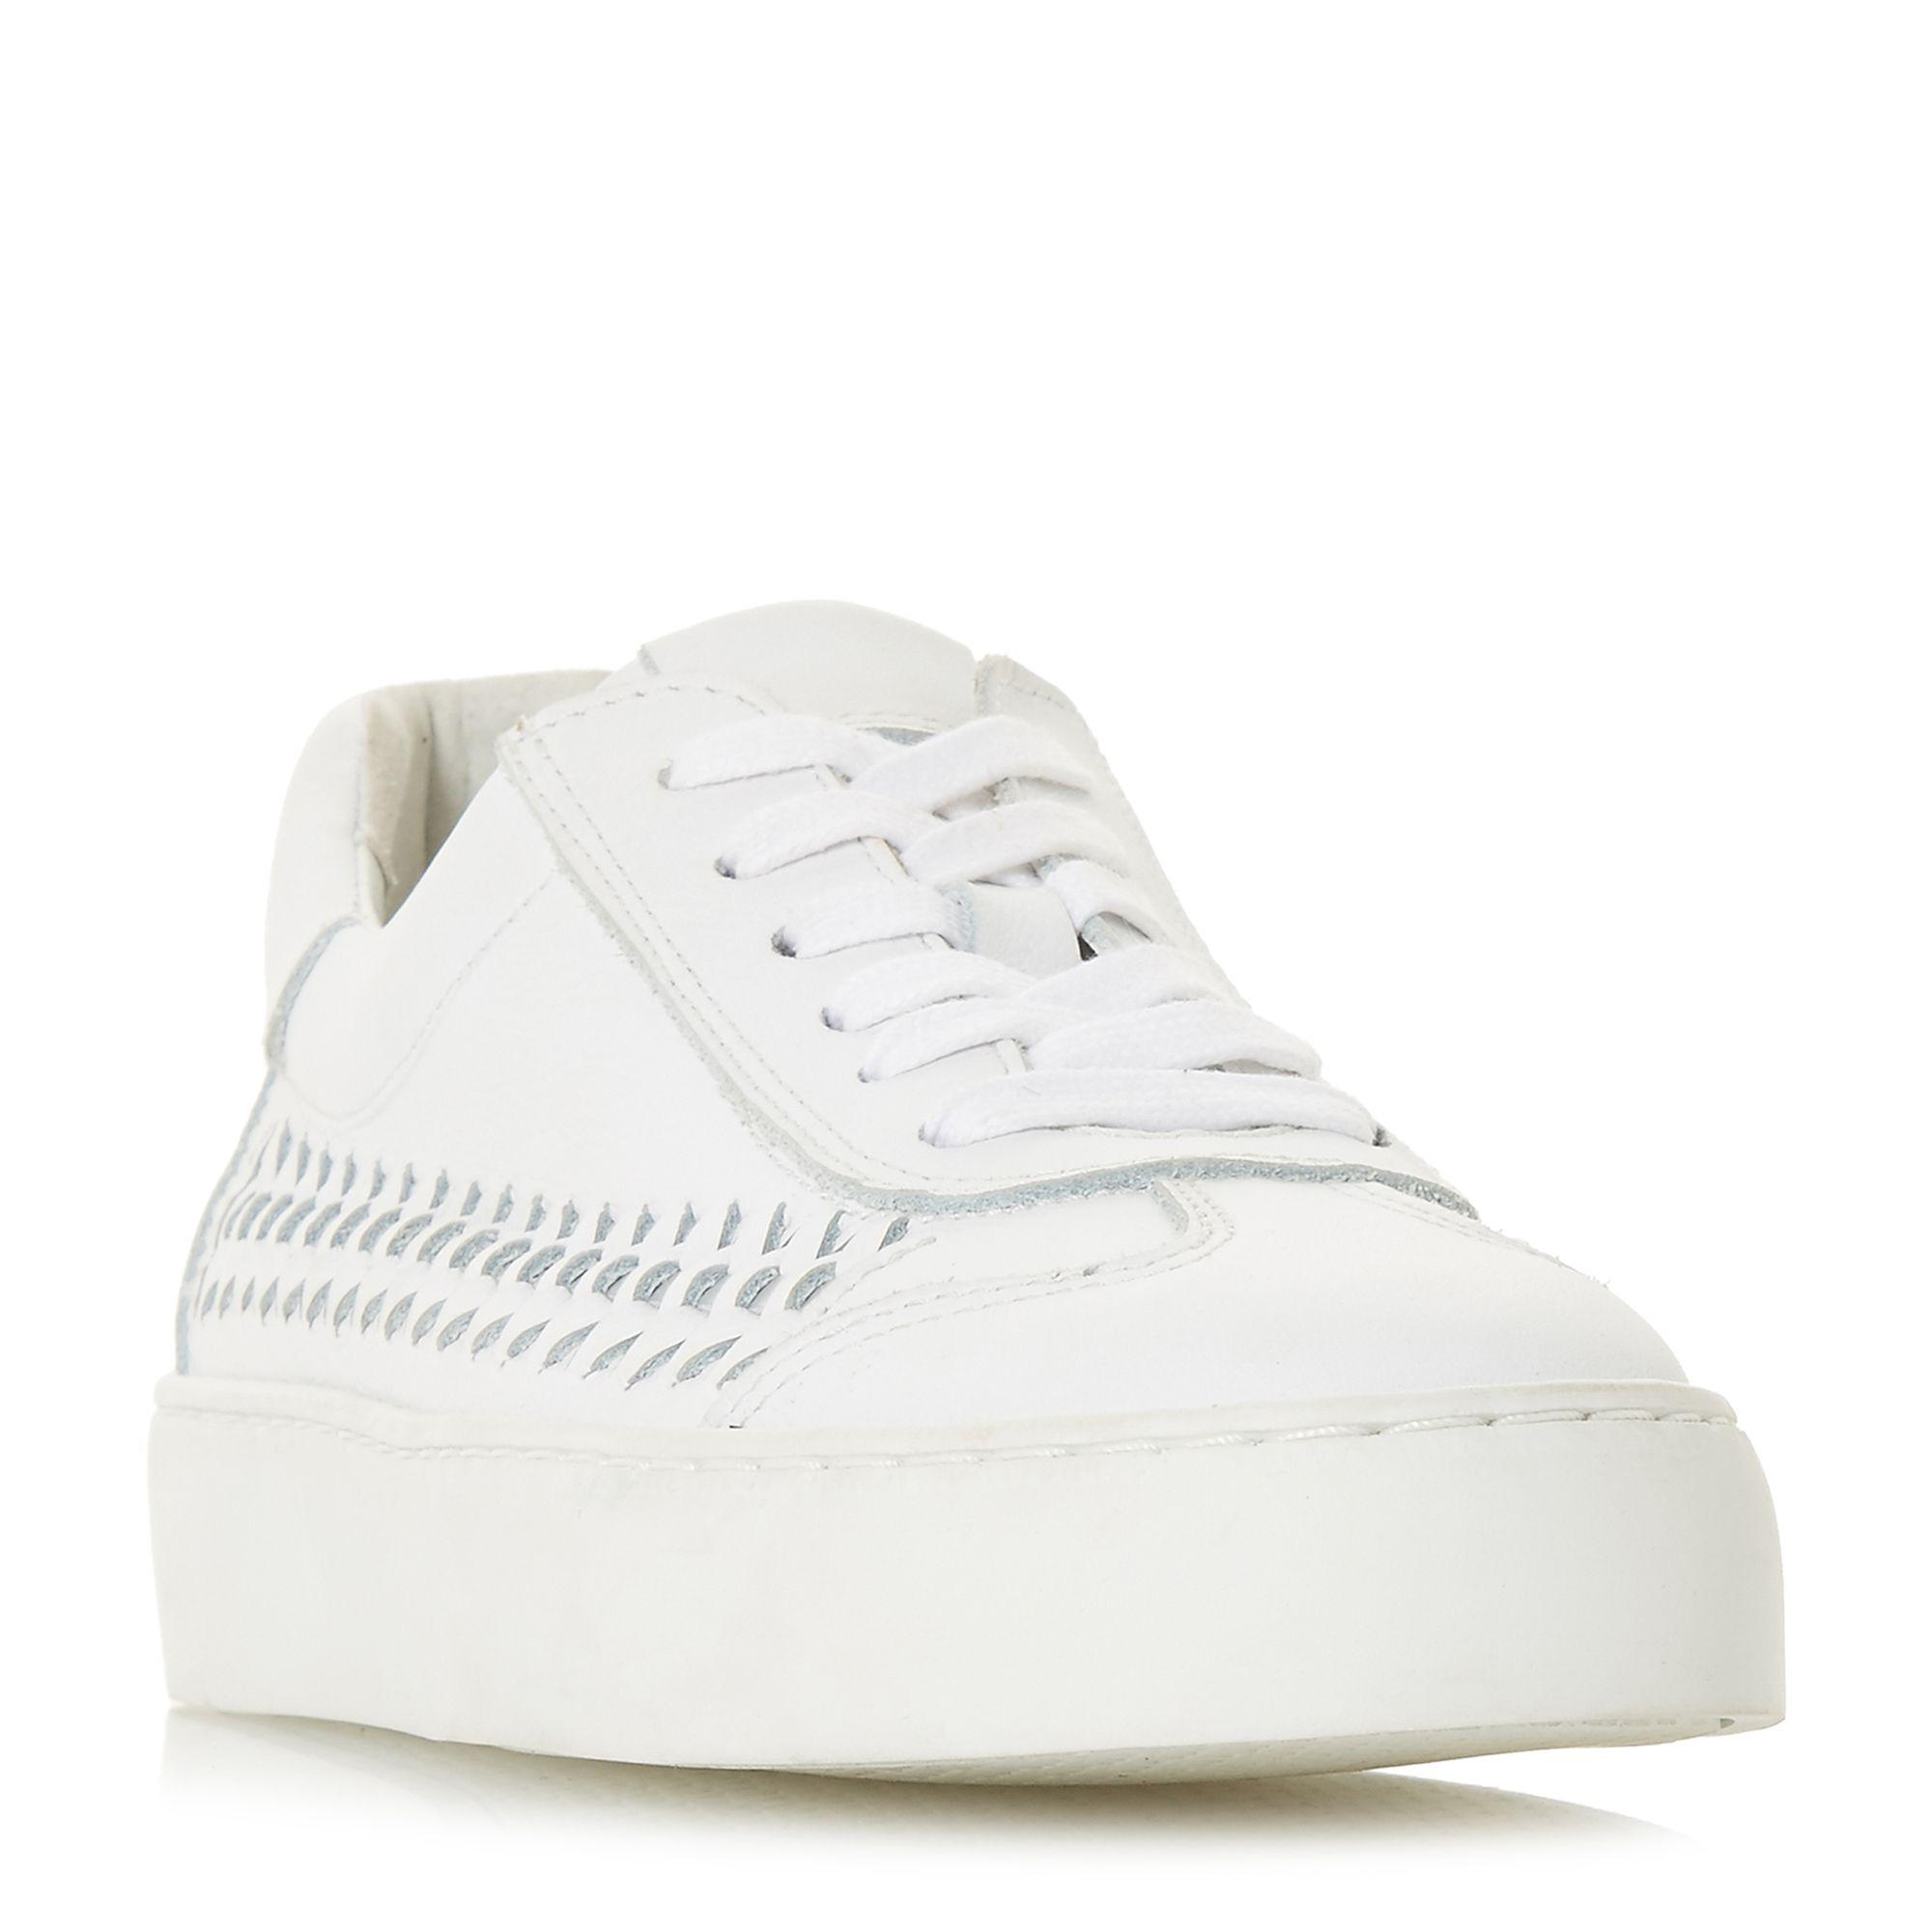 free shipping under $60 Black leather 'Elurru' lace up trainers clearance fashion Style cheap sale prices explore for sale tpbaQB